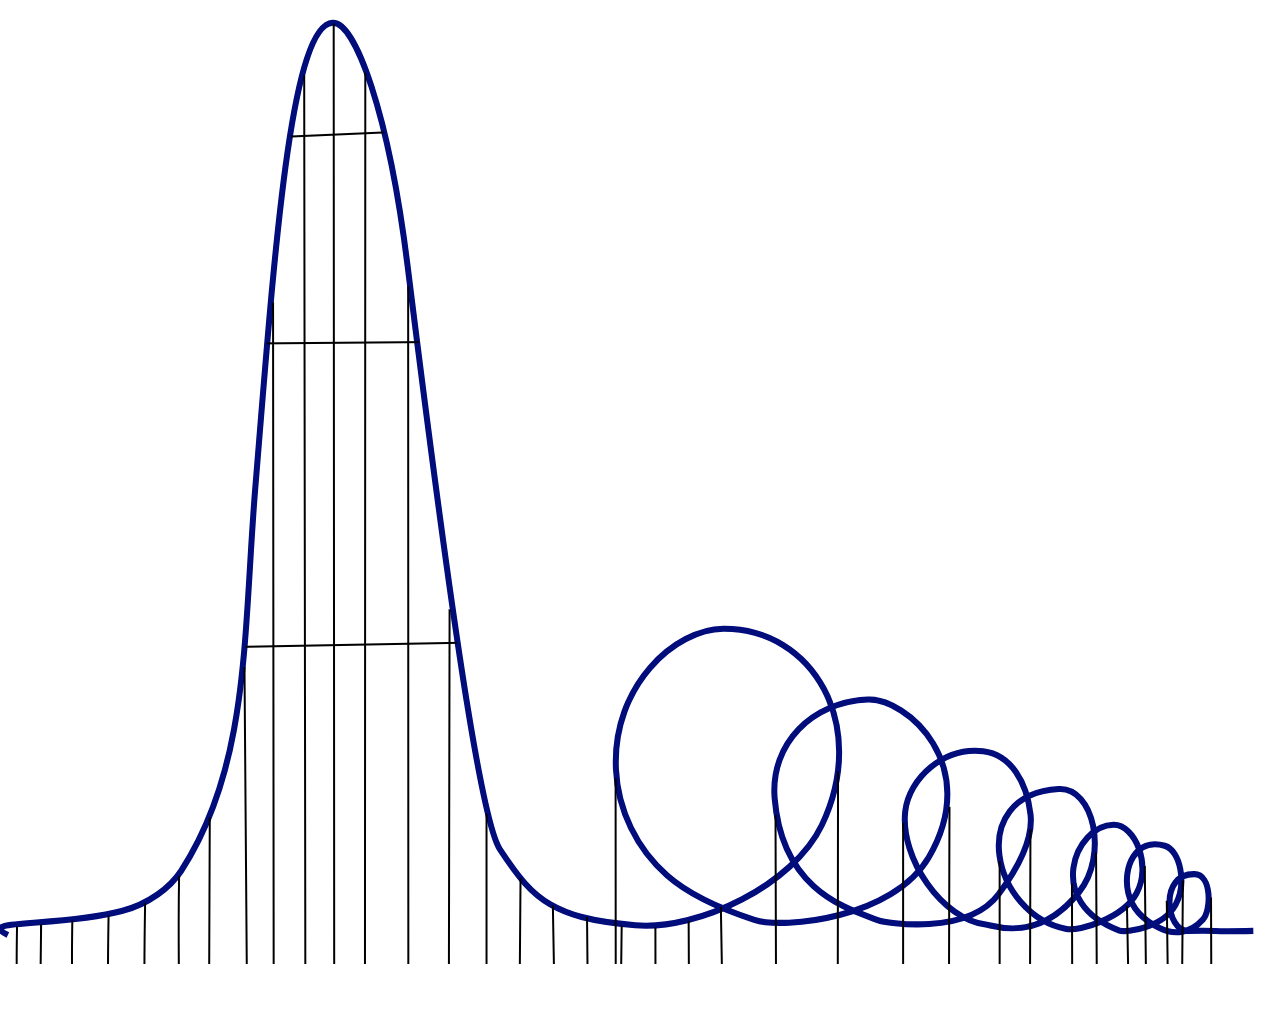 The rollercoaster, with one large drop and seven loops